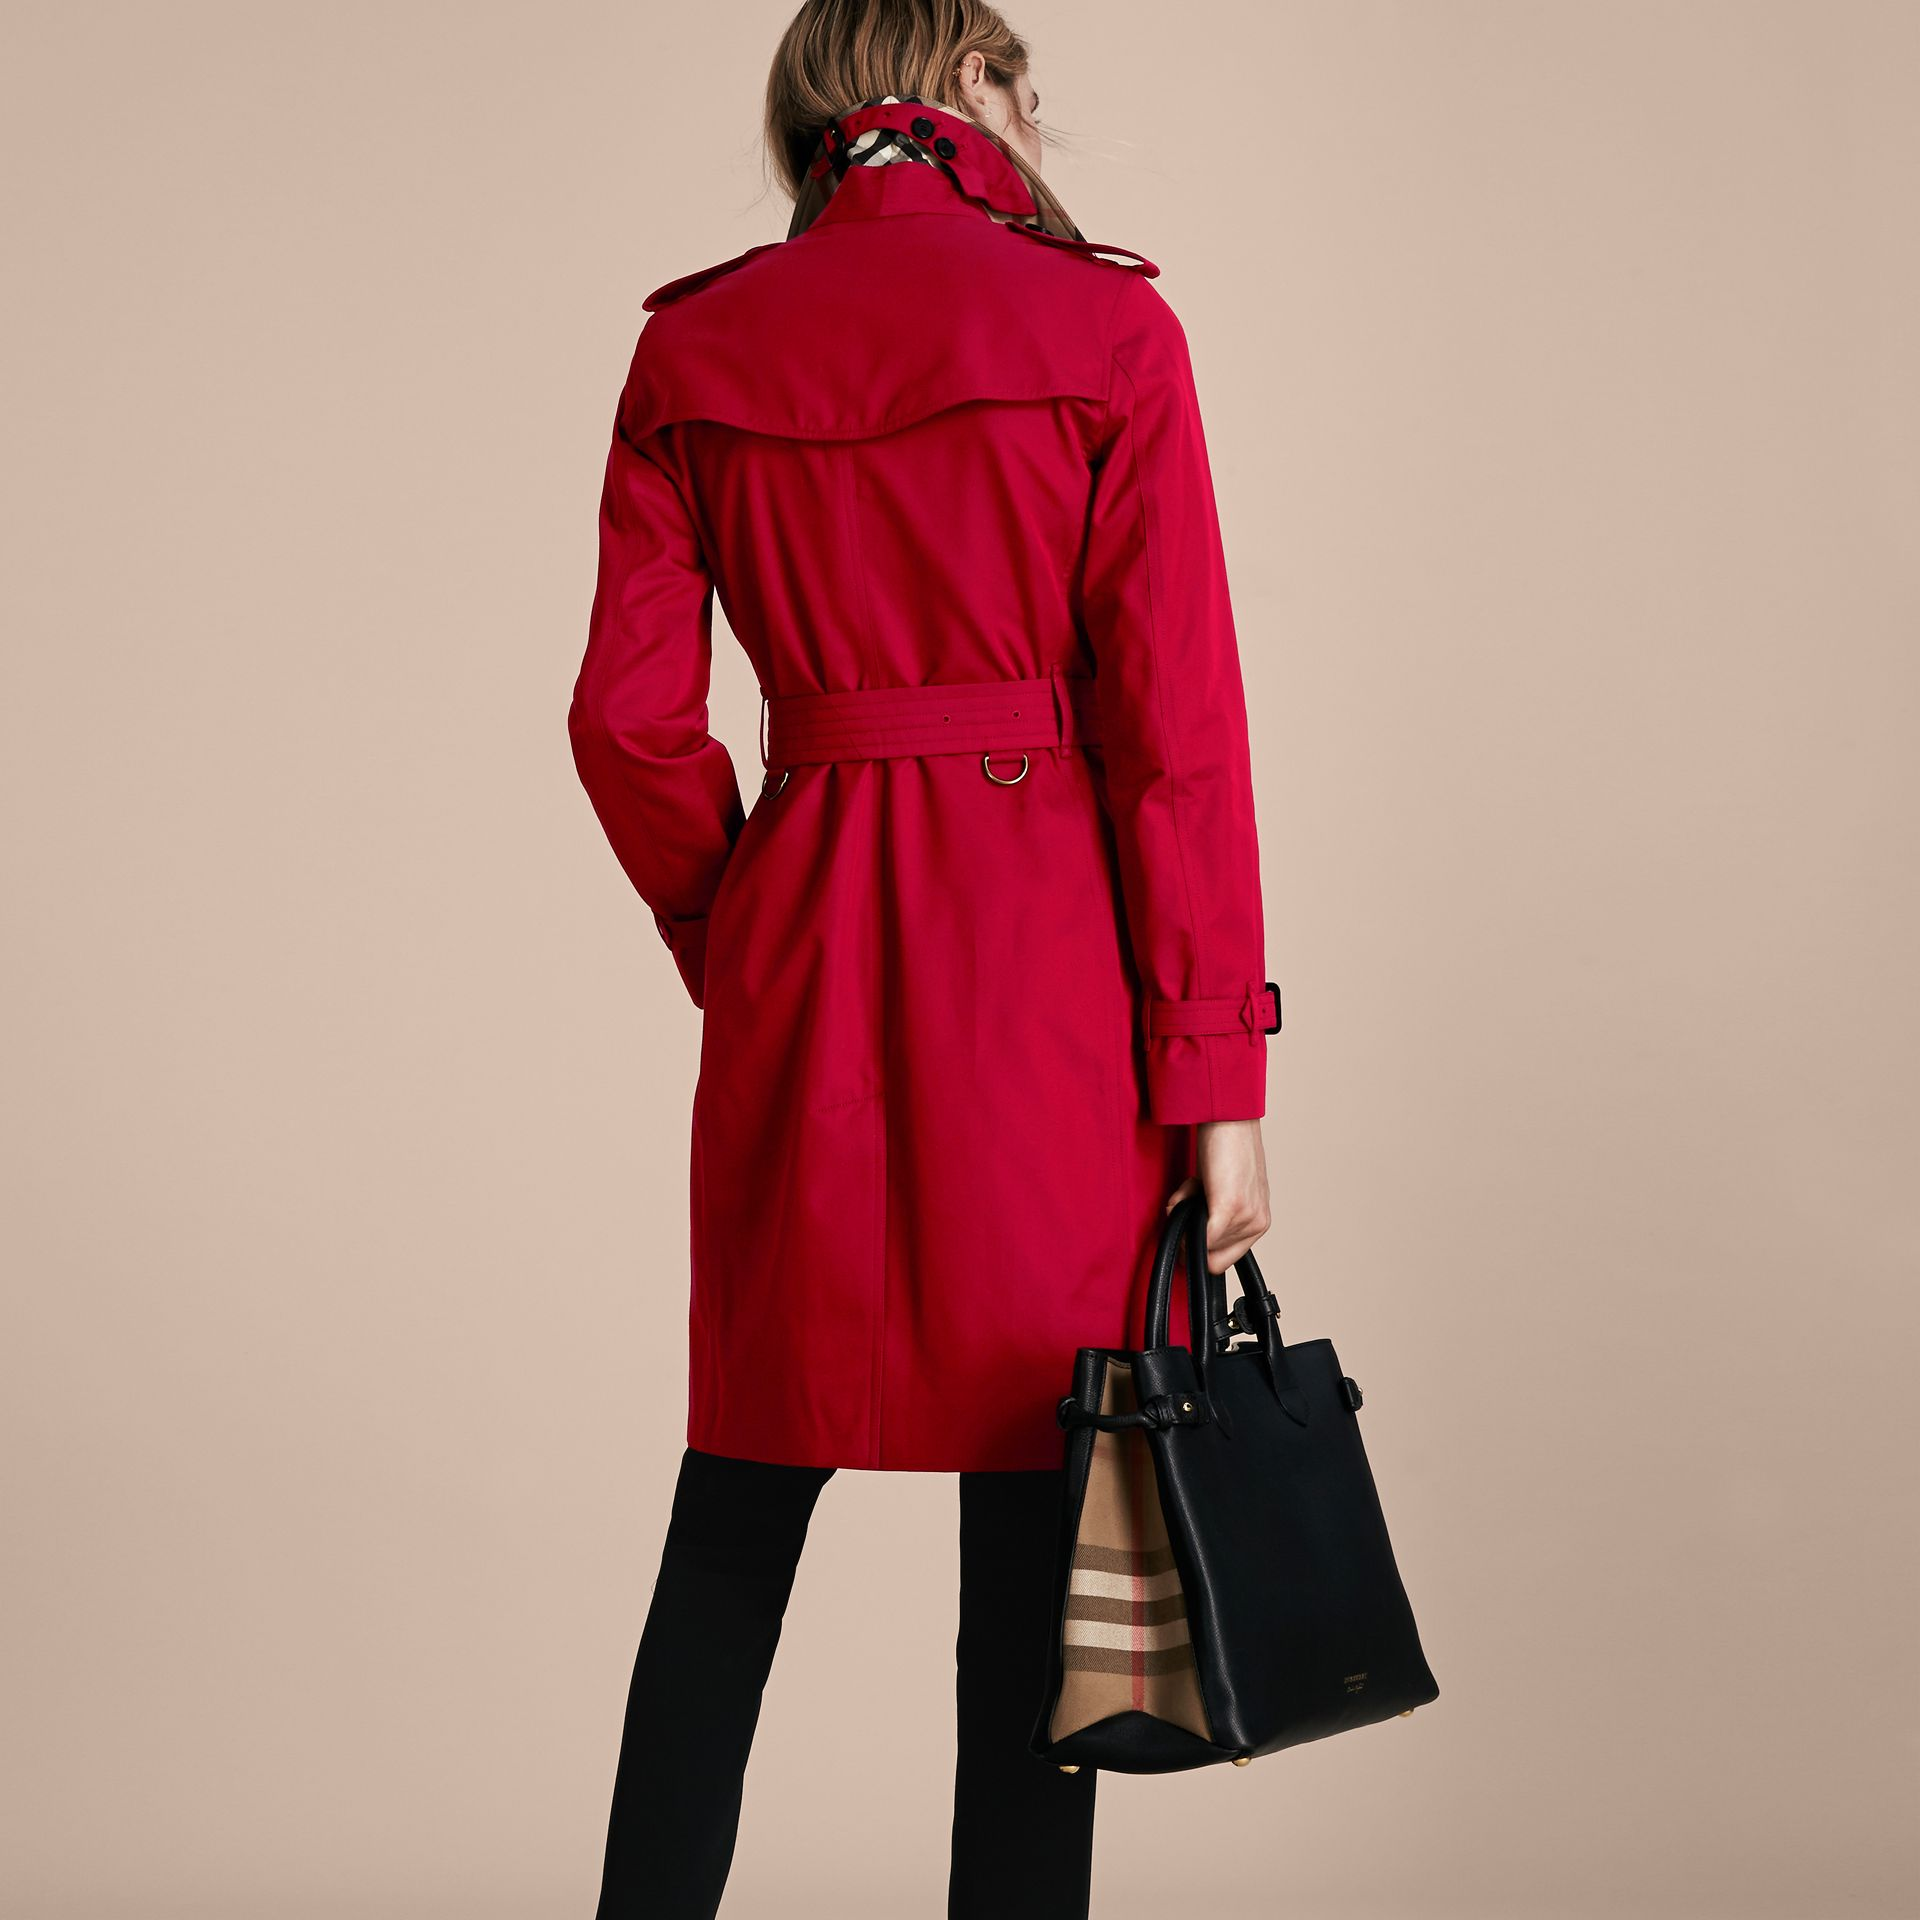 Parade red The Kensington - Trench coat Heritage longo Parade Red - galeria de imagens 3